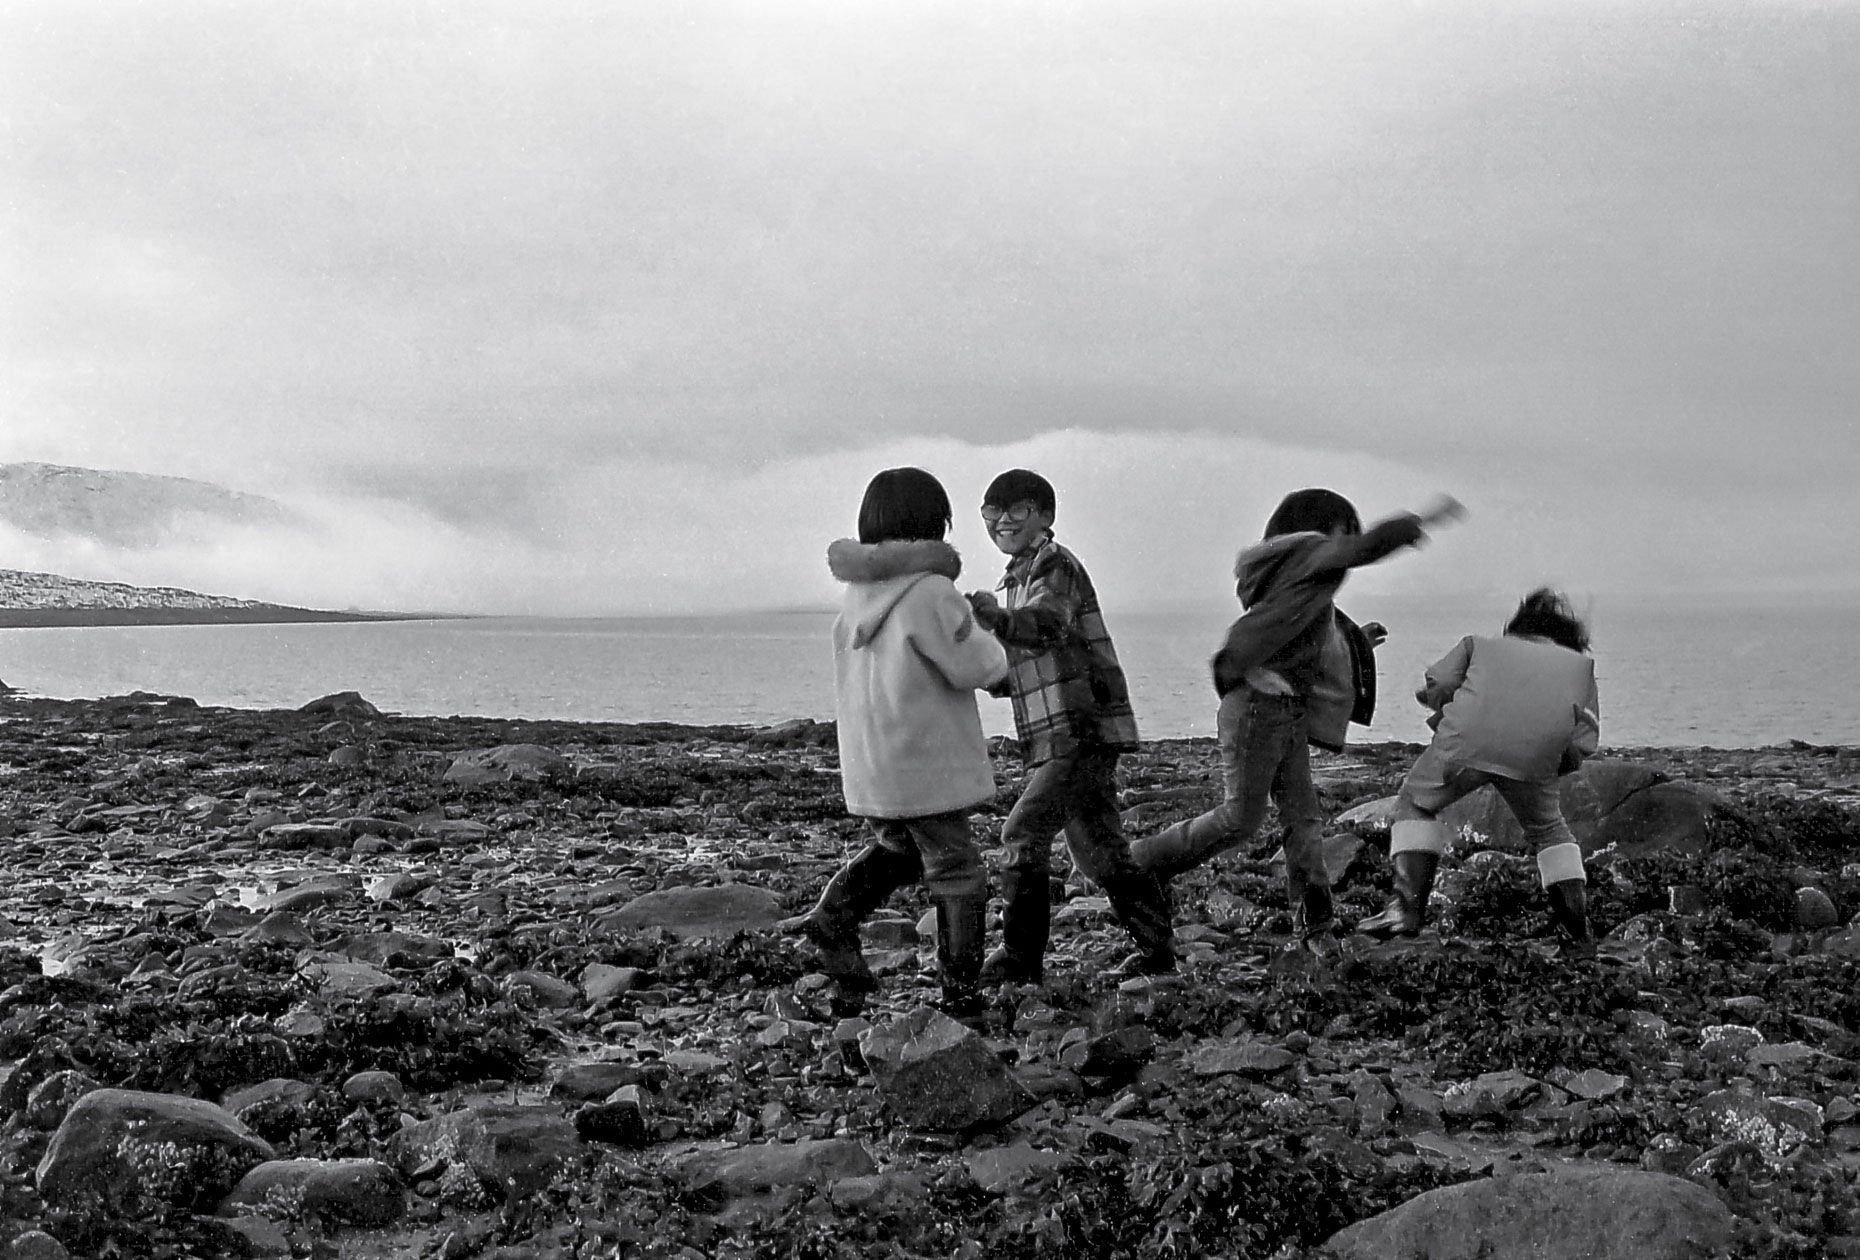 23-Inuit-boys-fooling-around-After-the-tide,-Cape-Dorset,-Canadian-Arctic-